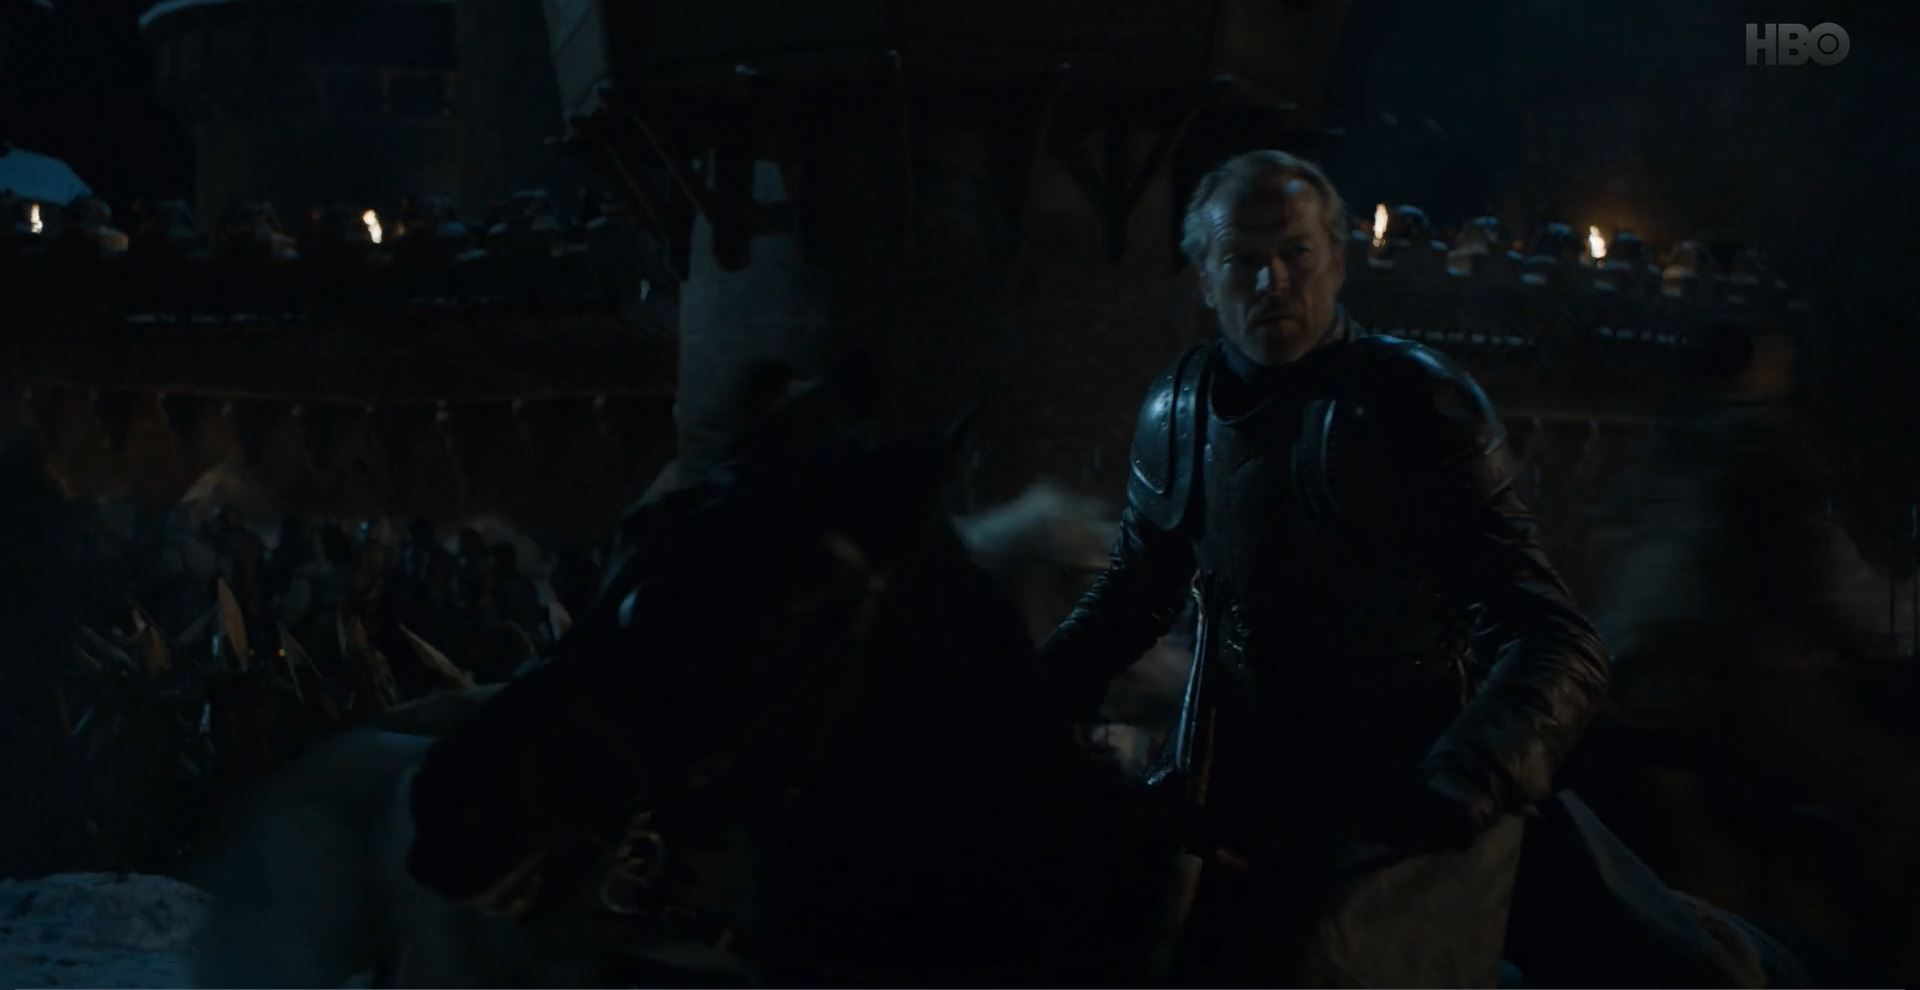 Game of Thrones S08E02 A Knight of the Seven Kingdoms Review - Ser Jorah Mormont prepares for battle